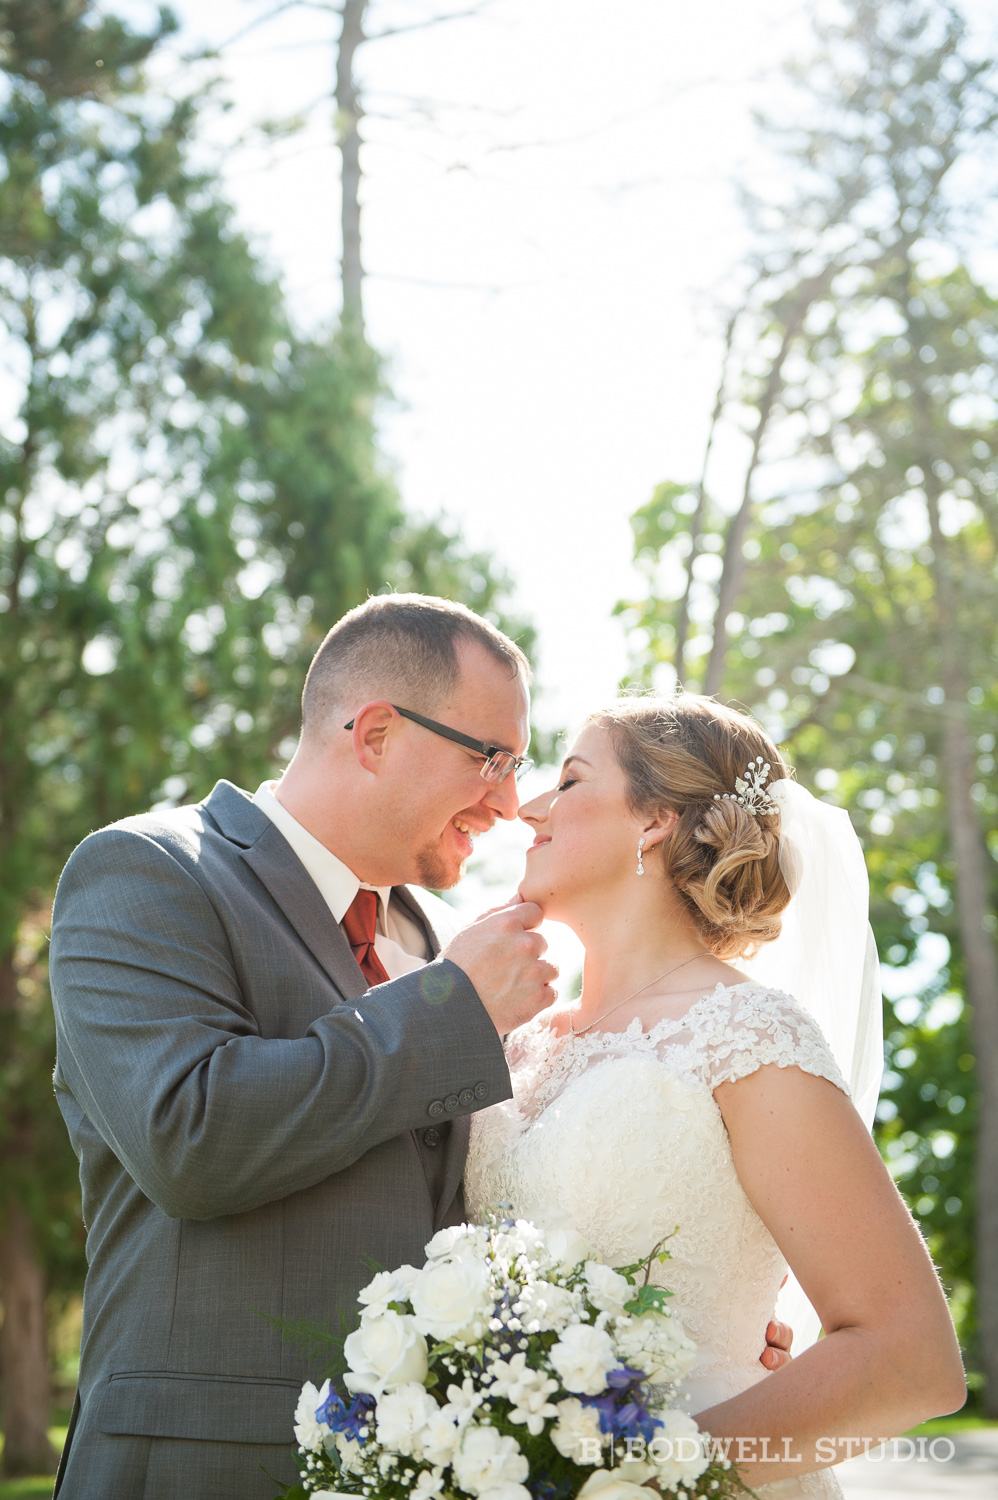 Dicks_Wedding_Blog_019.jpg